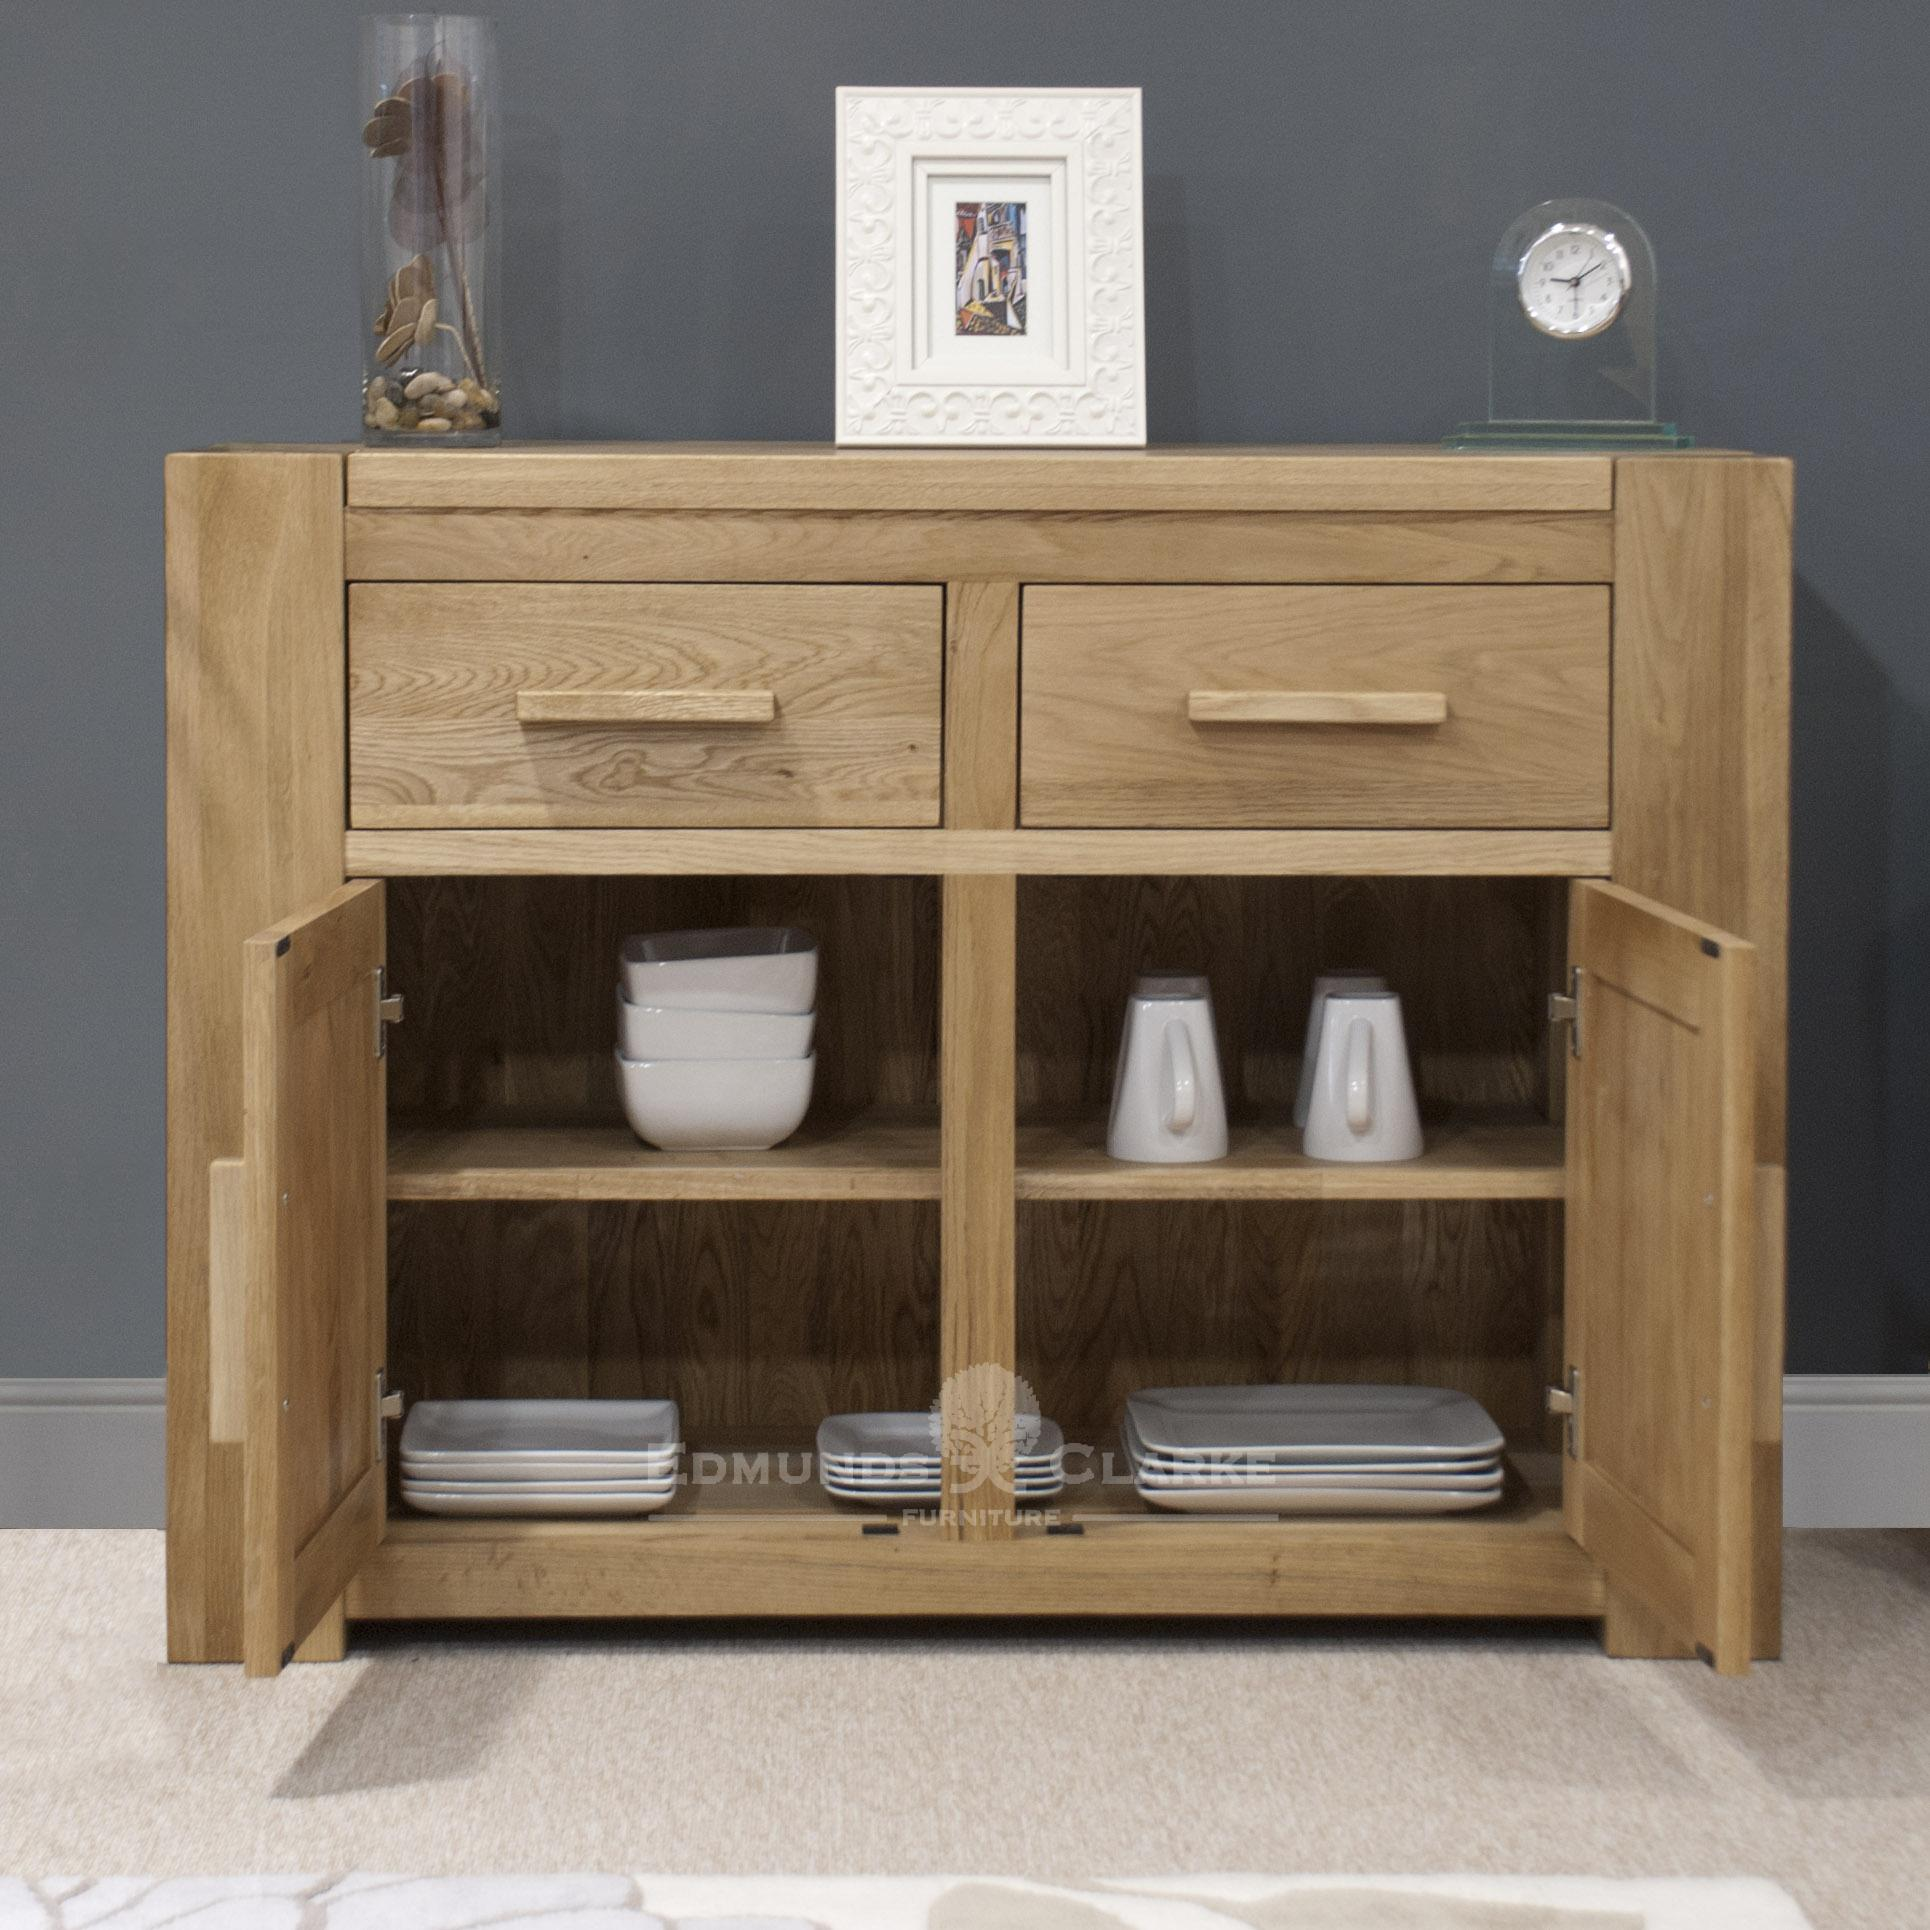 Newmarket solid oak two door two drawer sideboard